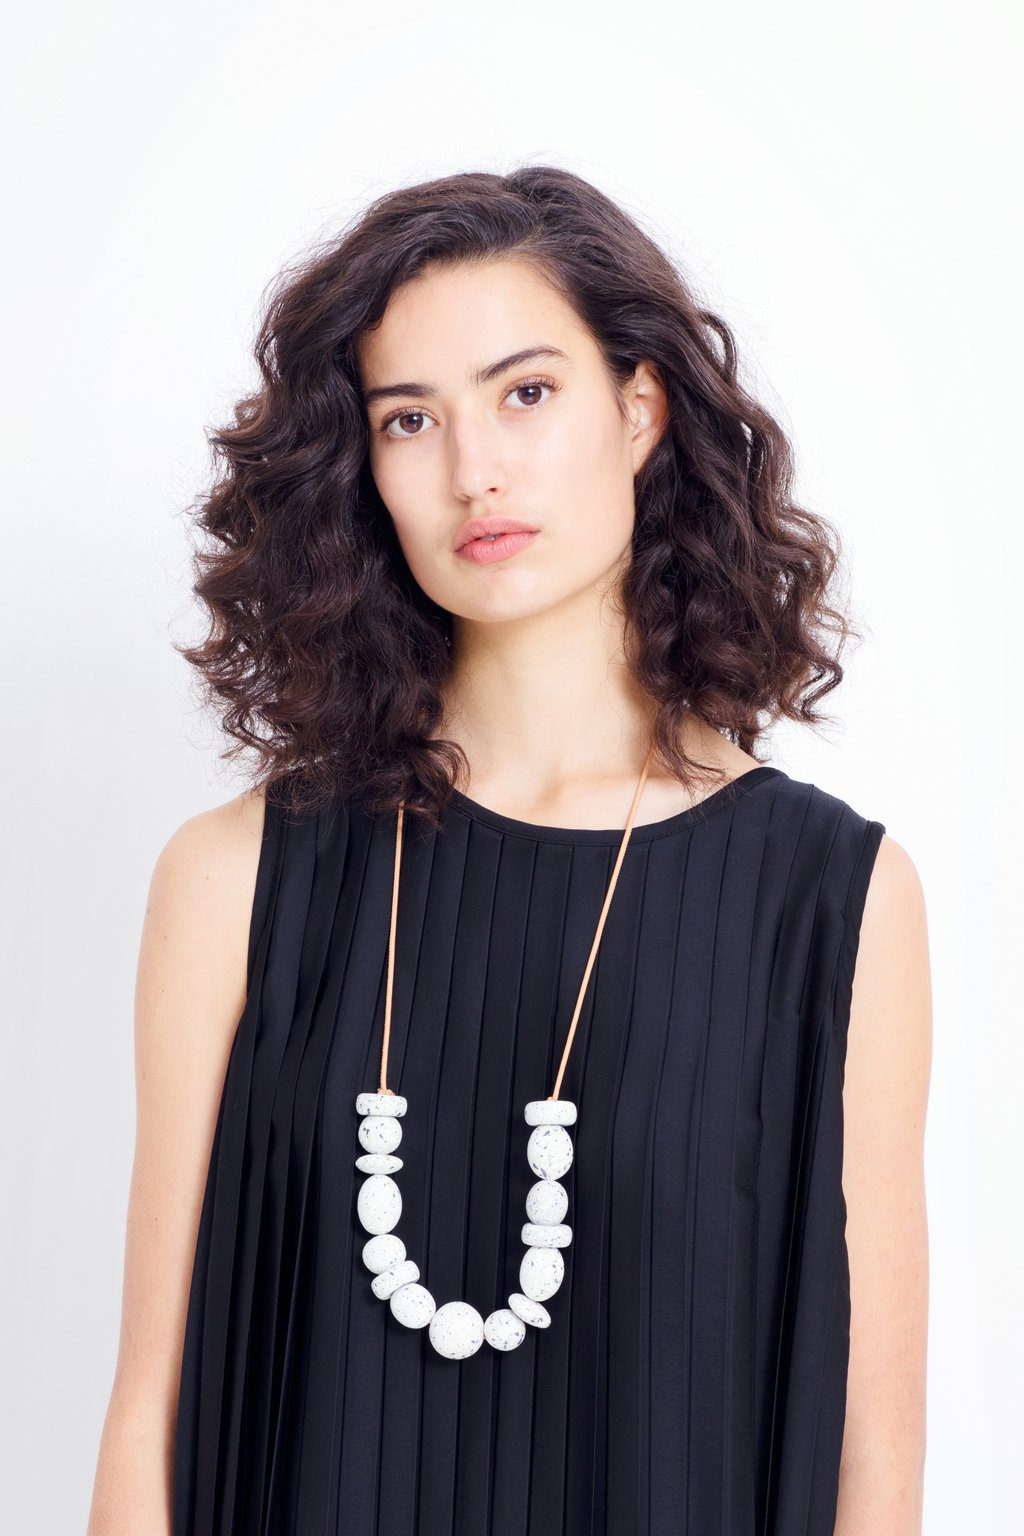 ELK The Label - Long Terrazzo Necklace - Black online at PAYA boutique